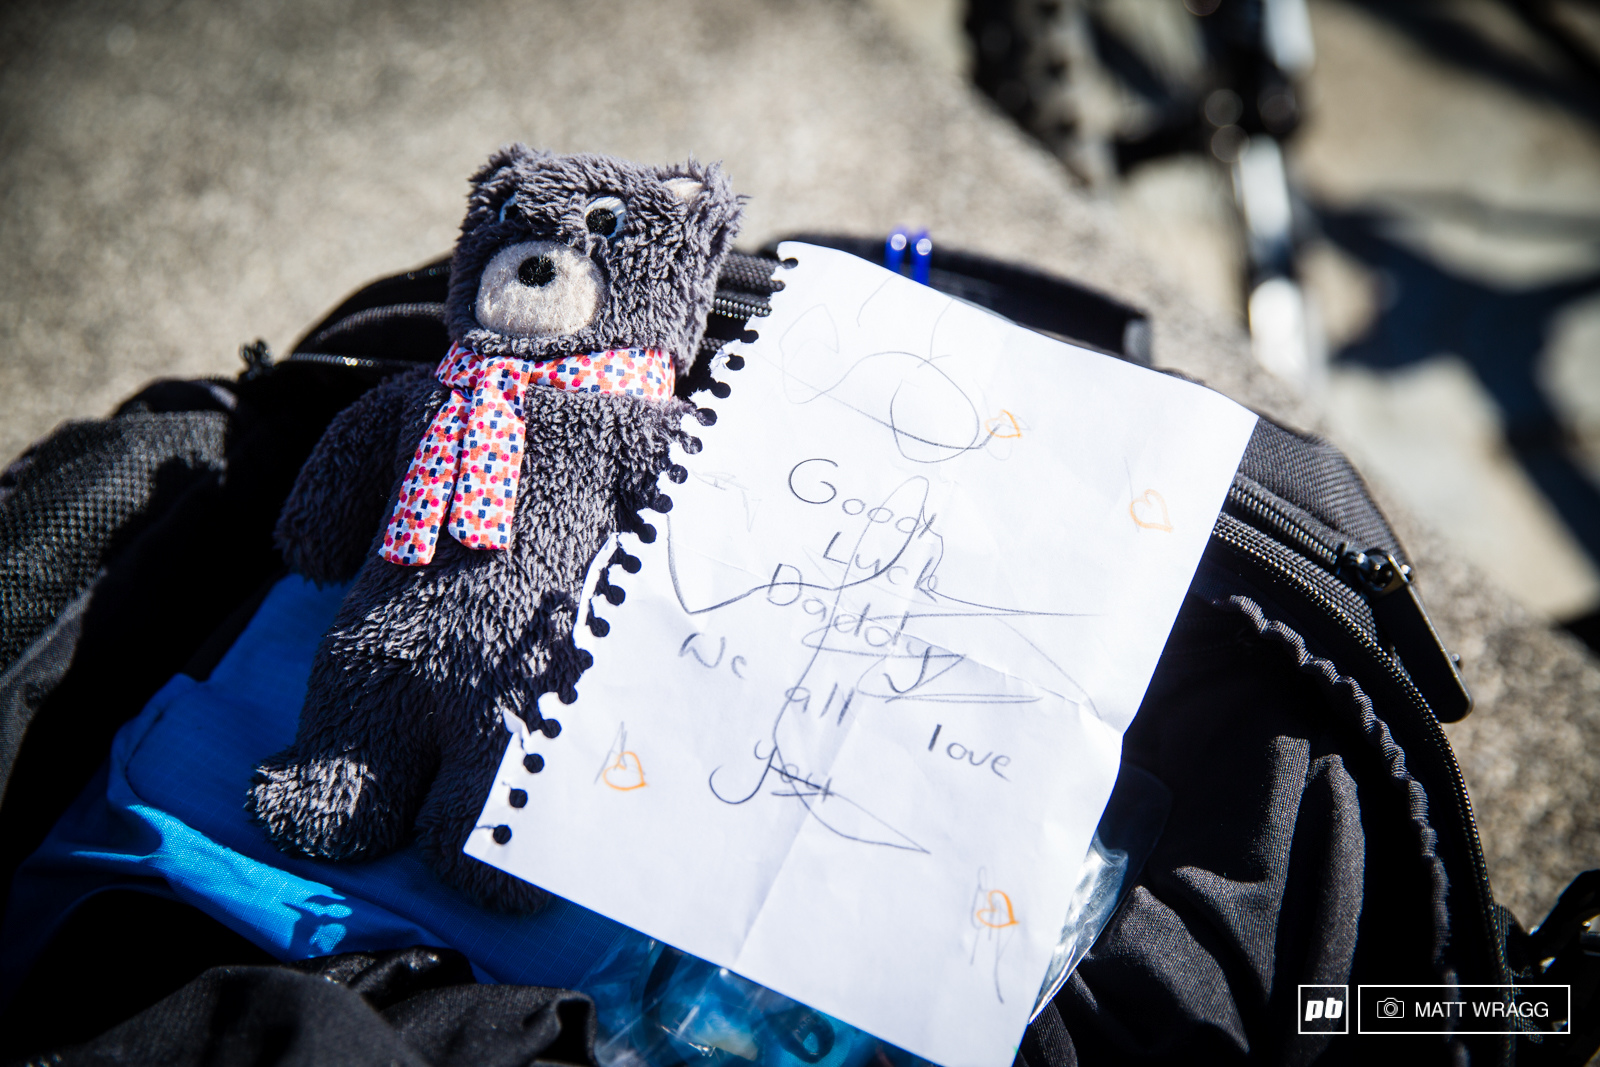 Justin Leov found a nice surprise in his bag this morning - a note from his family.